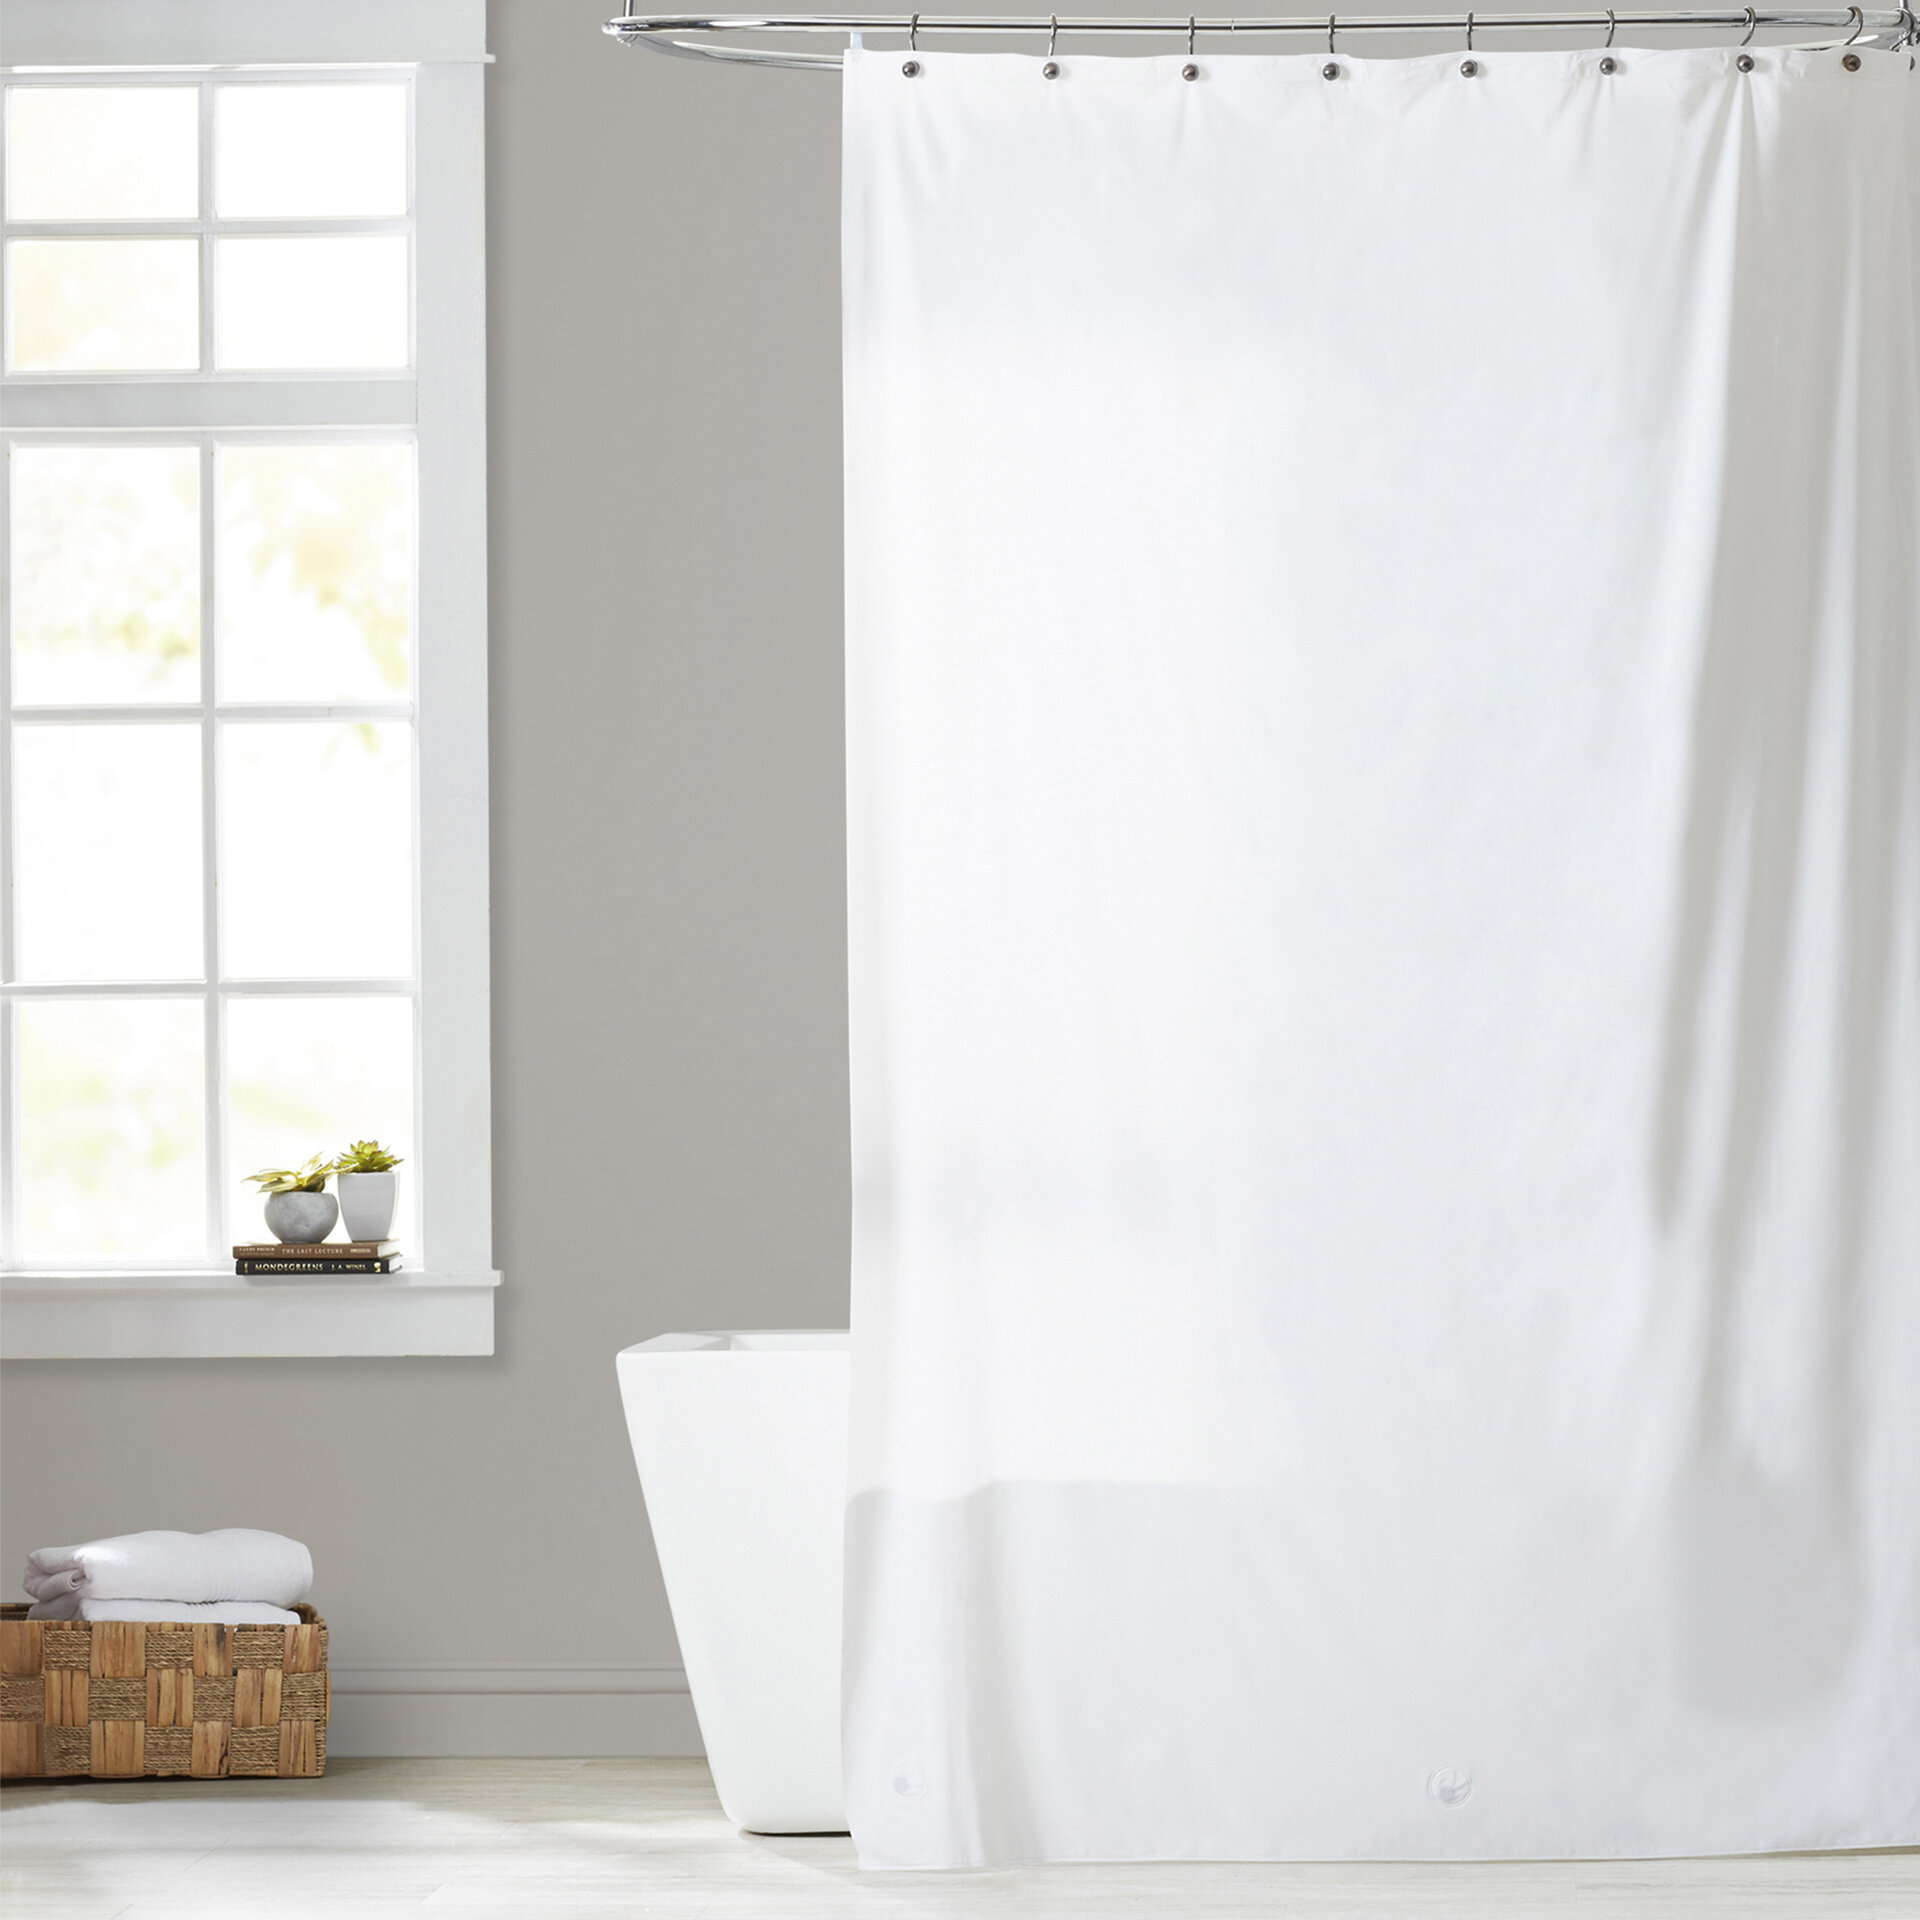 Symple Stuff Utilitarian Heavy Duty Shower Curtain Reviews